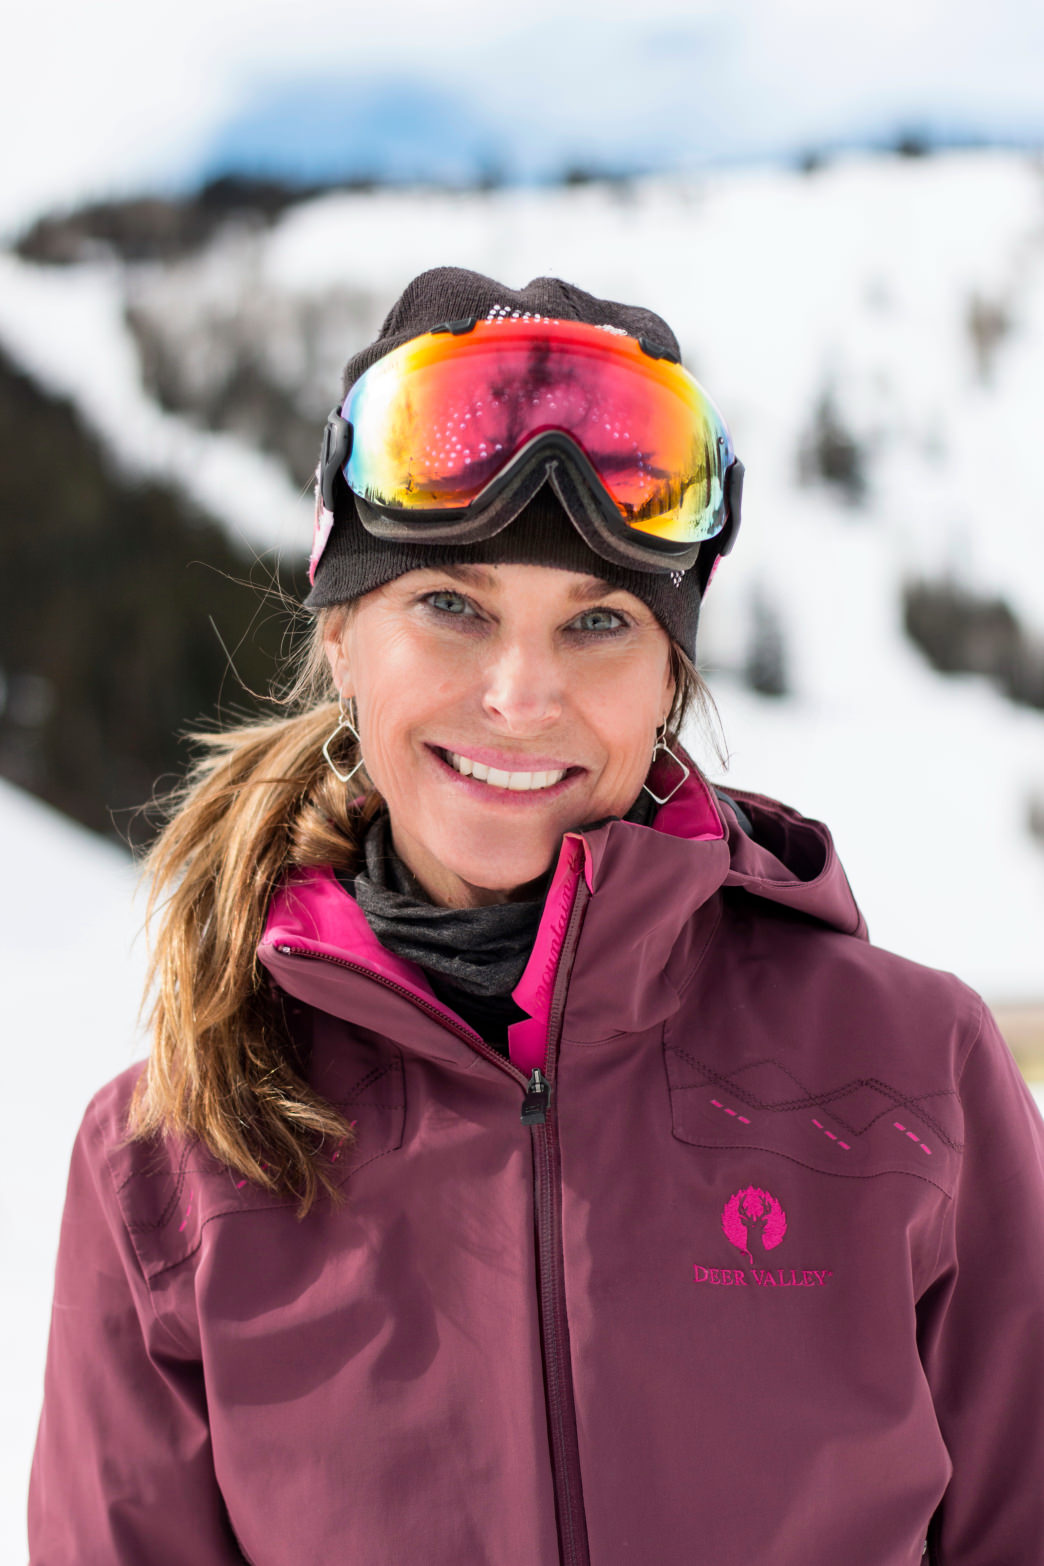 Three-time Olympian Heidi Voelker is Deer Valley's Ambassador of Skiing.